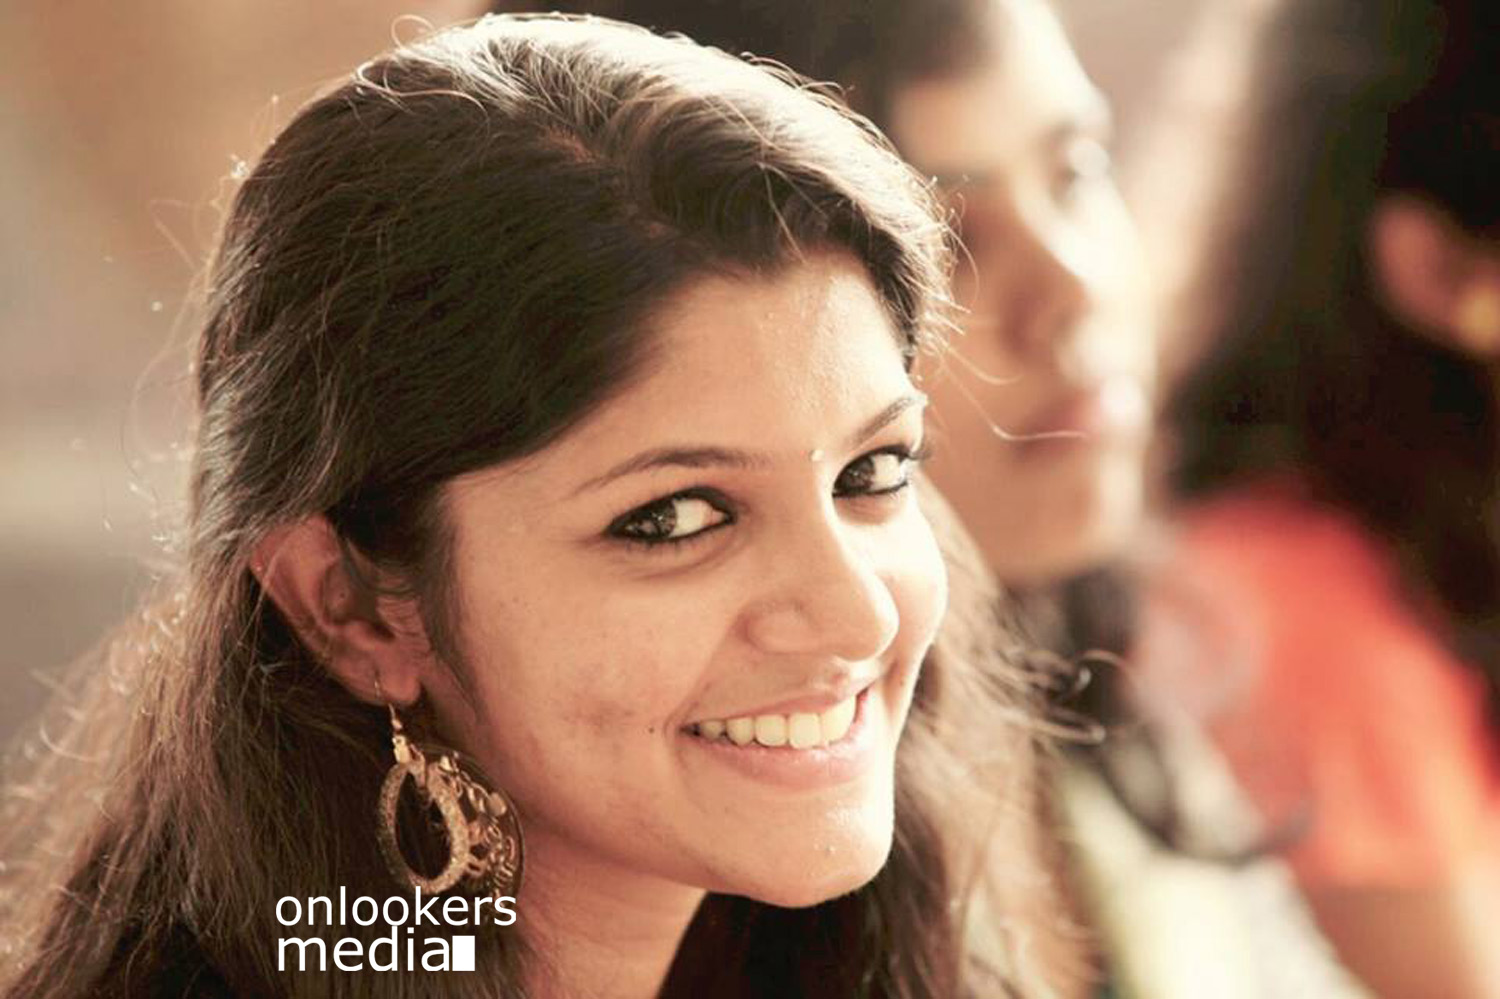 Aparna Balamurali, Maheshinte Prathikaram, oru second class yathra actress, Aparna Balamurali in Maheshinte Prathikaram, Maheshinte Prathikaram actress name, malayalam actress, Jincy in Maheshinte Prathikaram